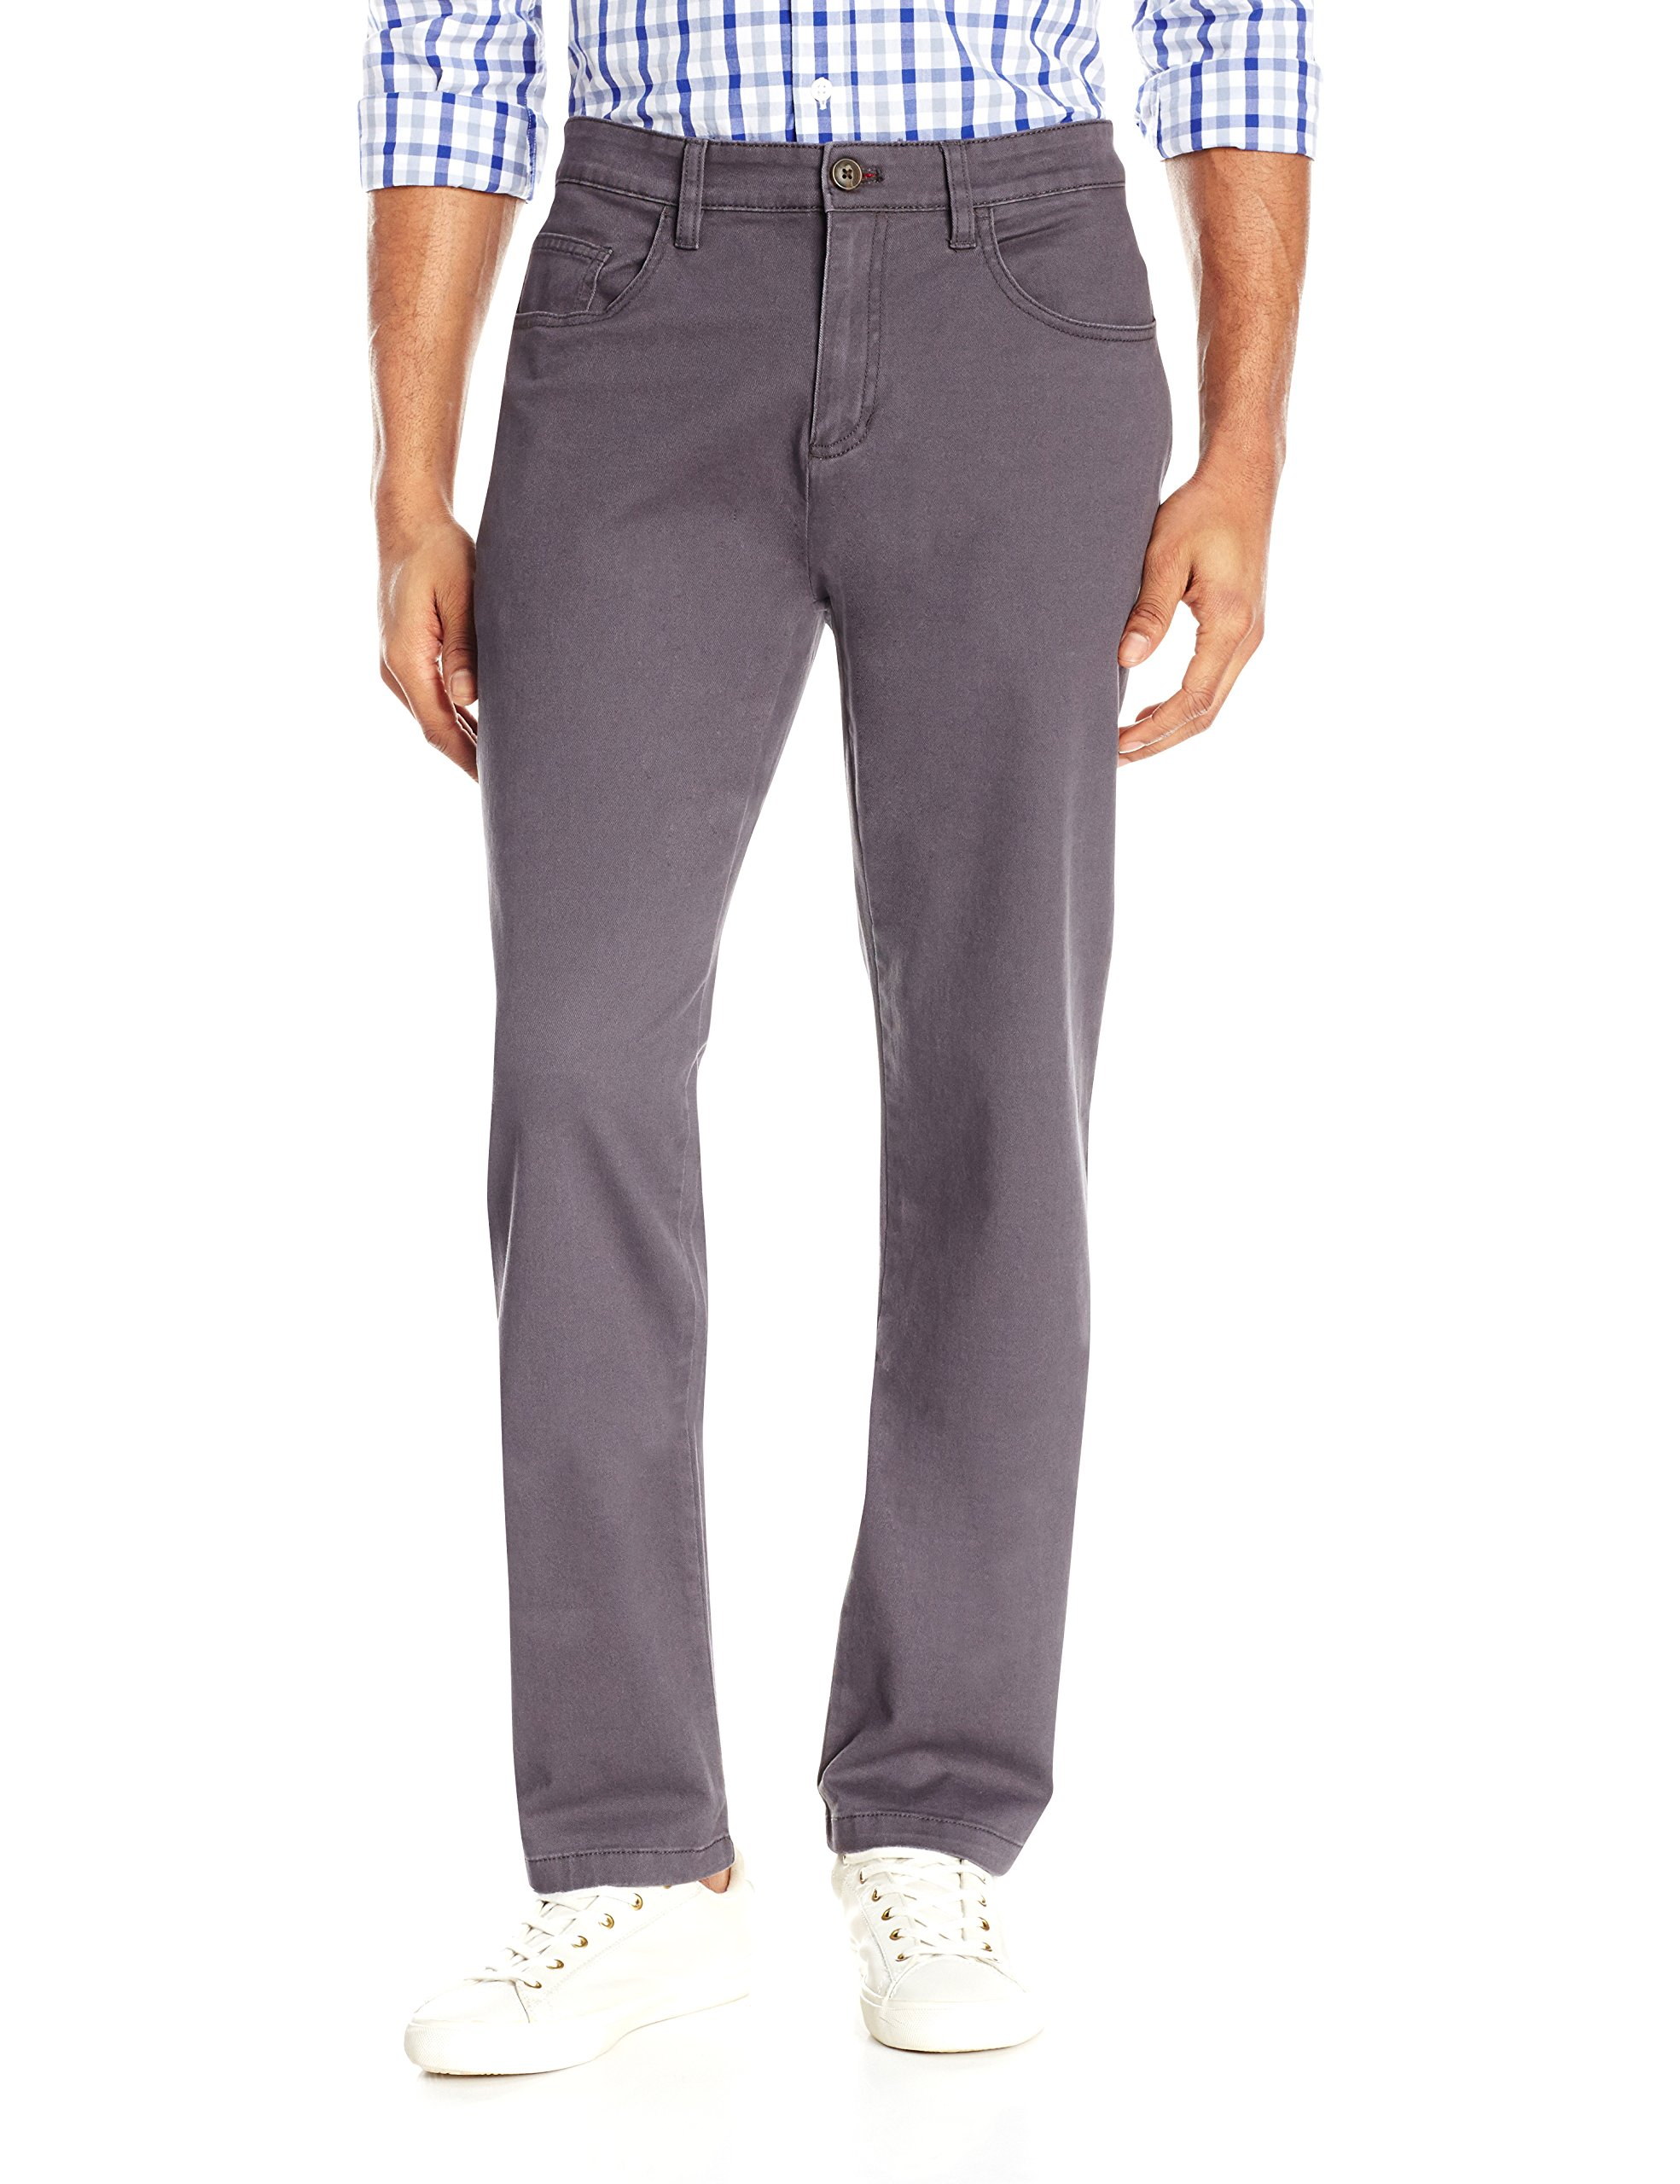 Goodthreads Men's Athletic Fit 5-Pocket Chino Pant, Grey, 33W x 30L